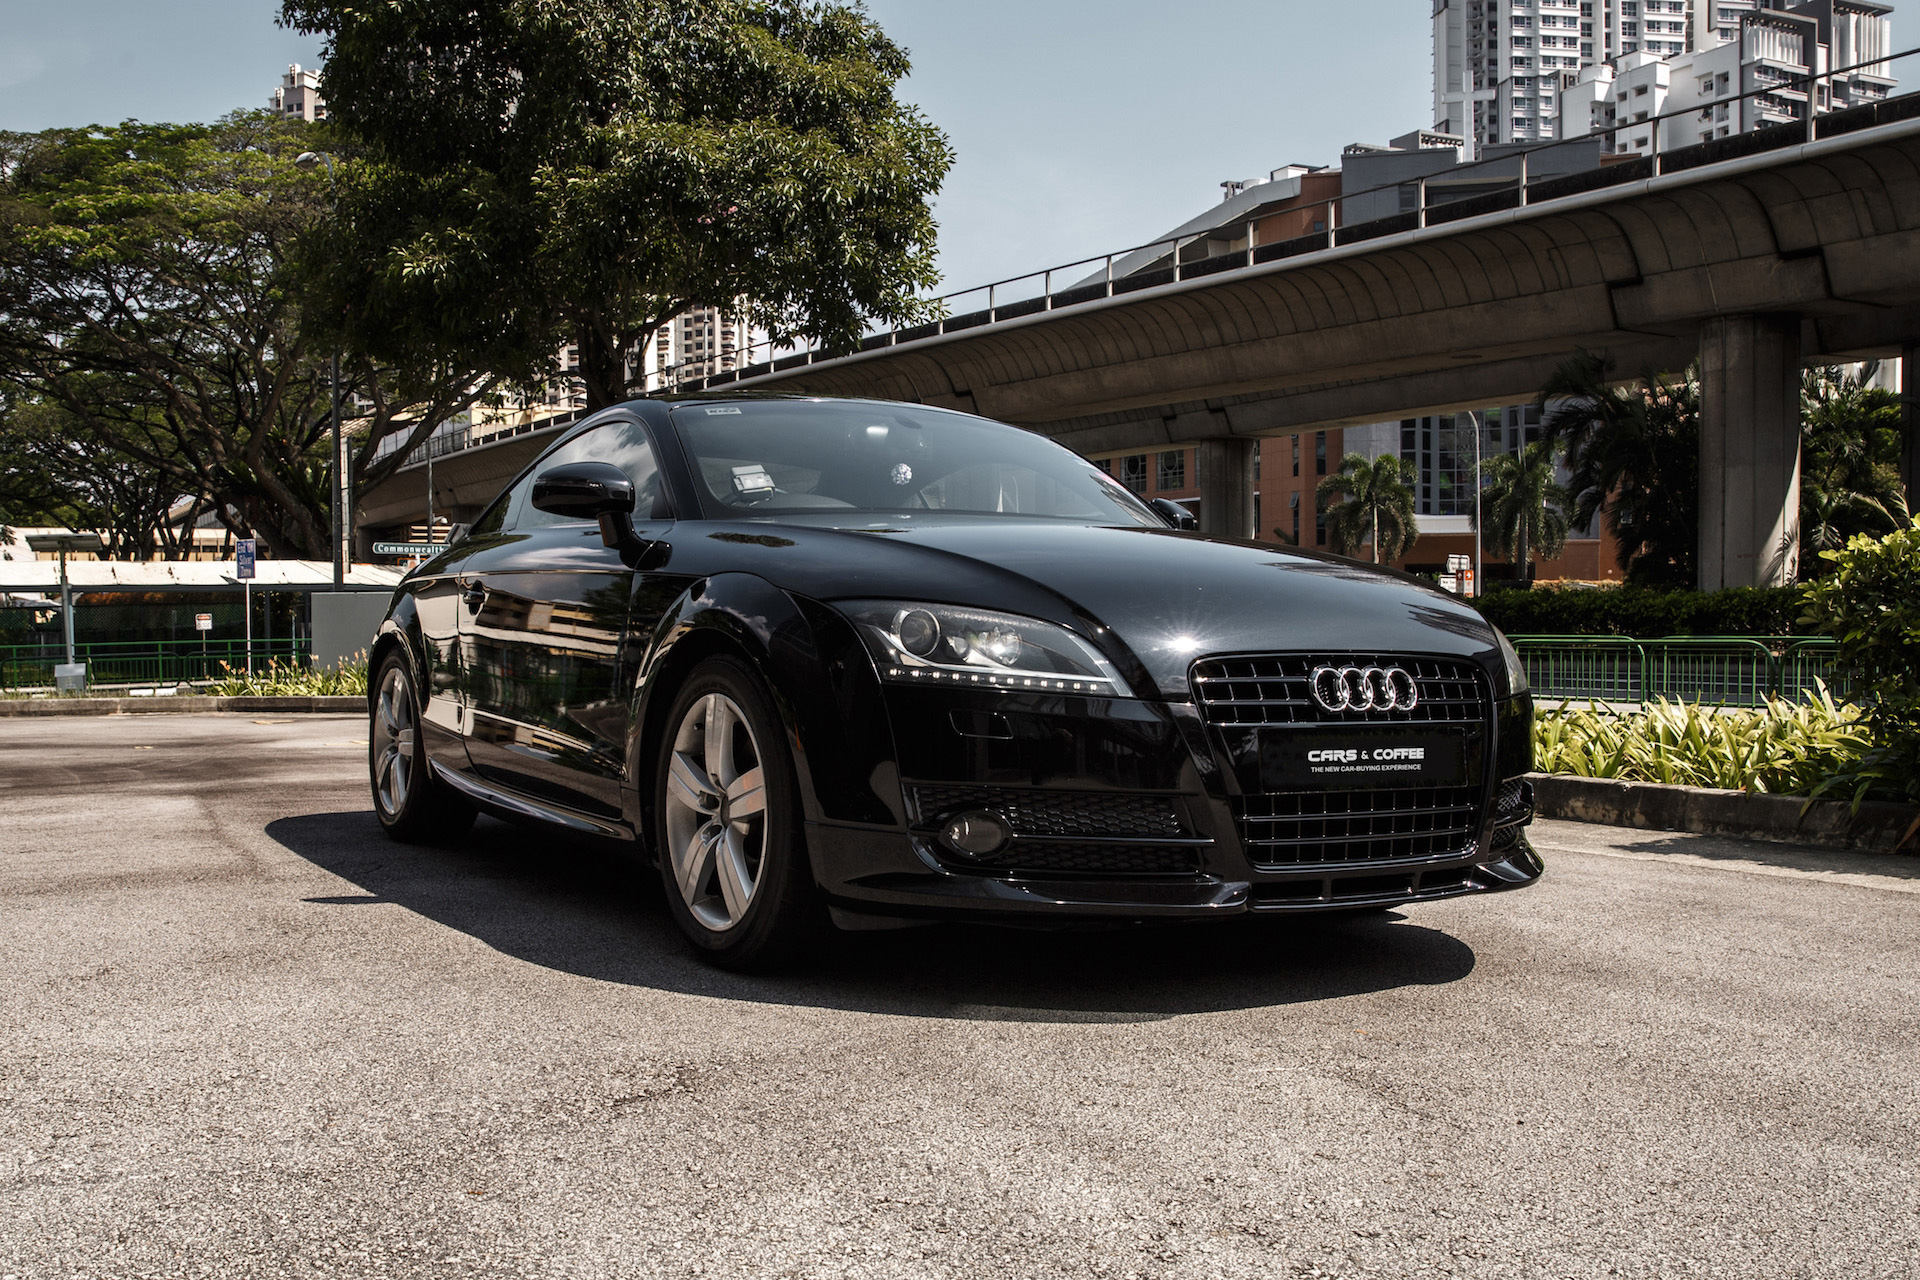 Certified Pre-Owned Car | Cars and Coffee Singapore